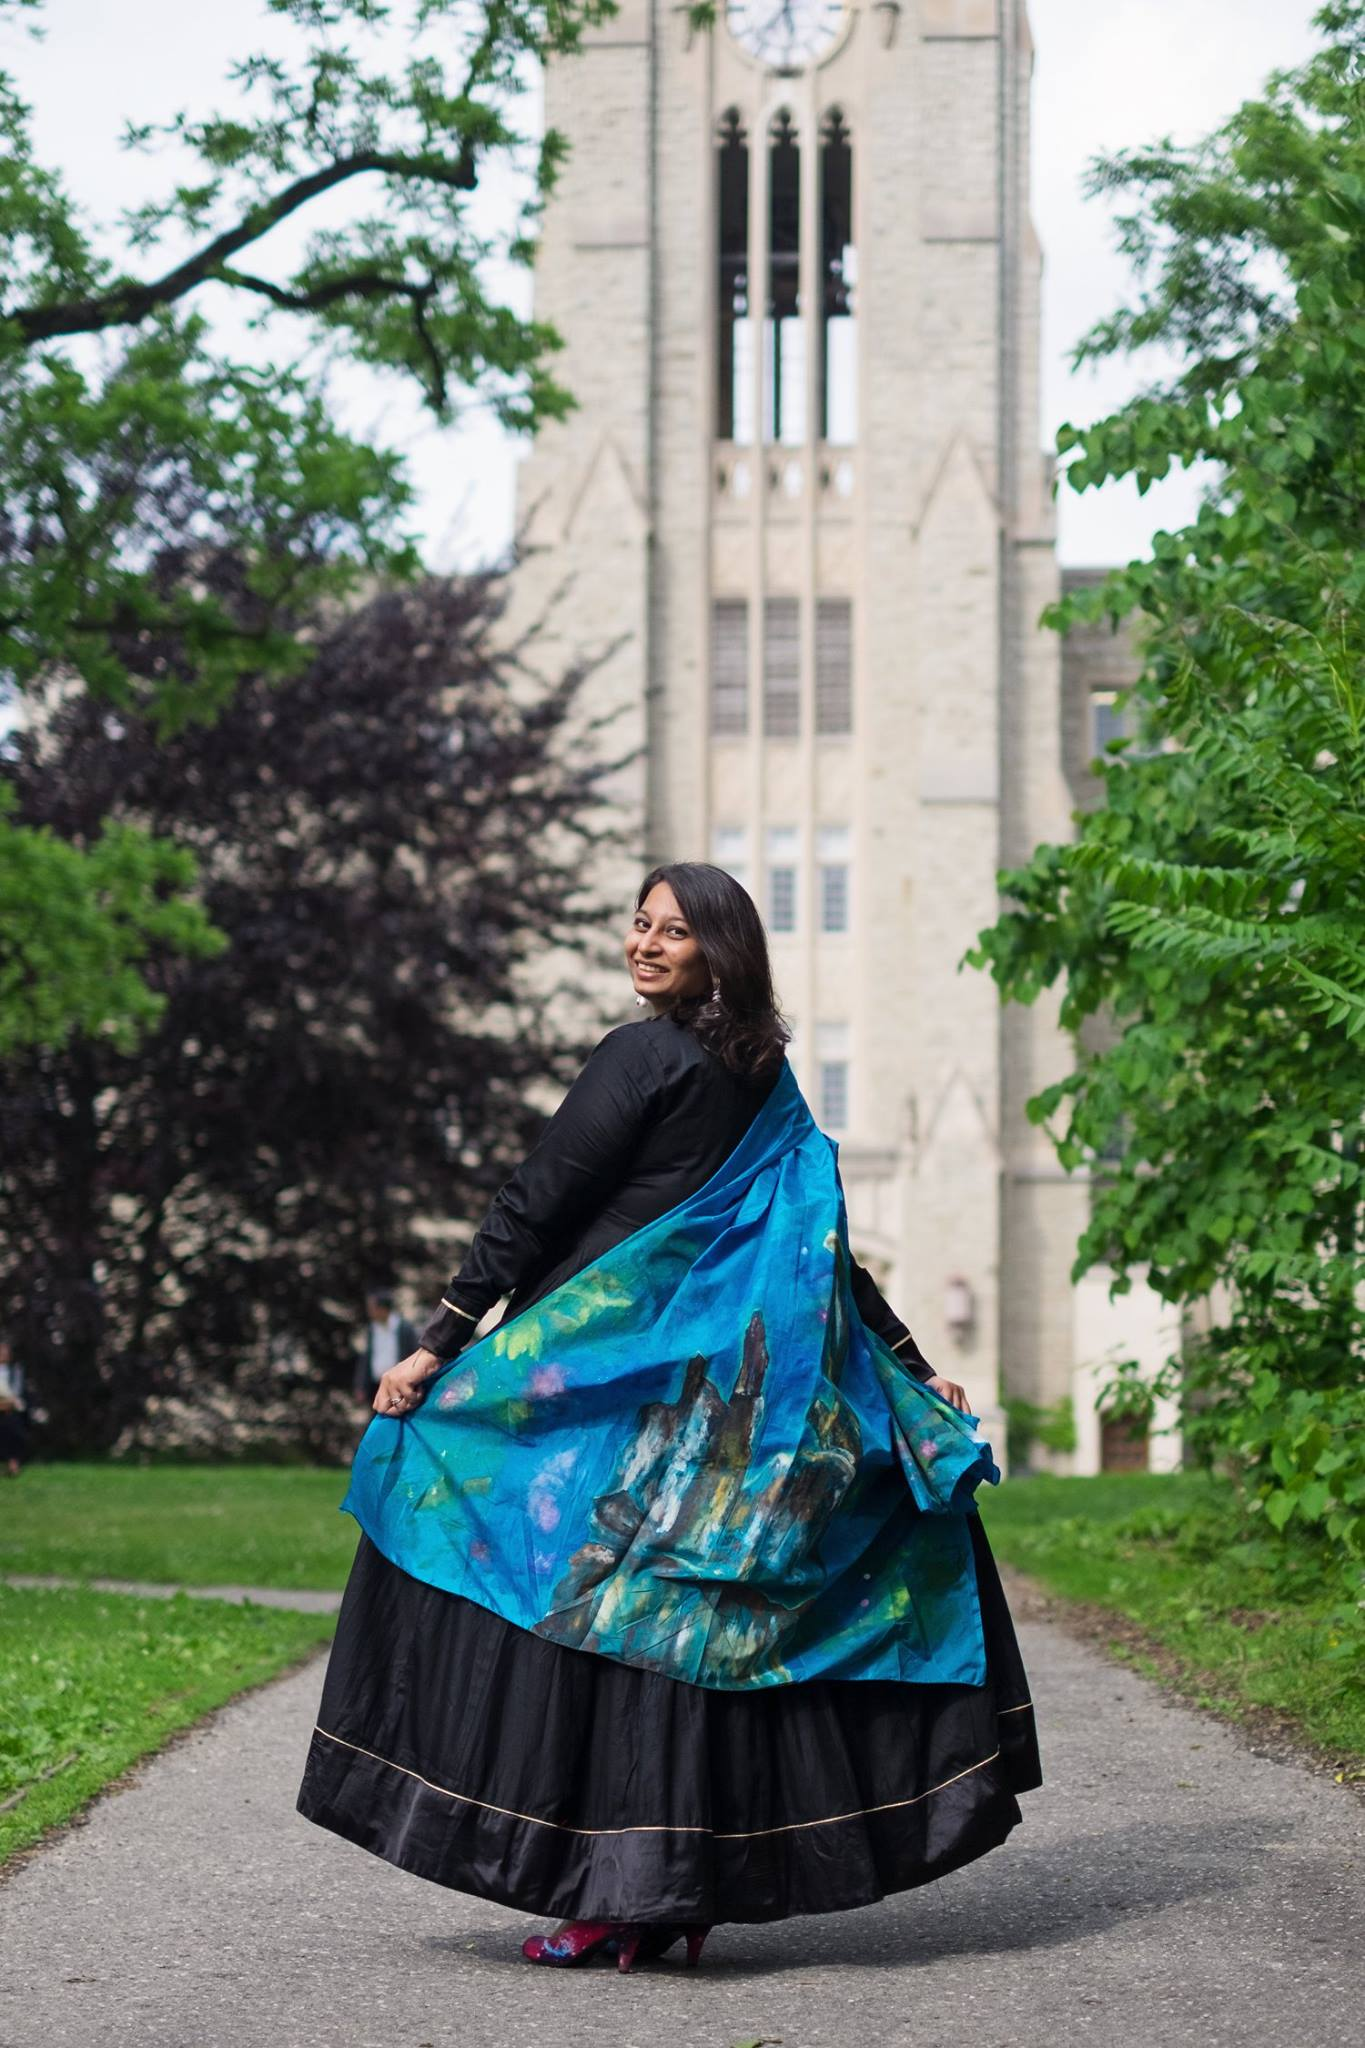 Parshati loves communicating her passion for space in several ways. In this photo, she is wearing a custom designed scarf for her graduation ceremony. The scarf was an artist's rendition of stellar nurseries or star forming regions - the topic of Parshati's PhD thesis.